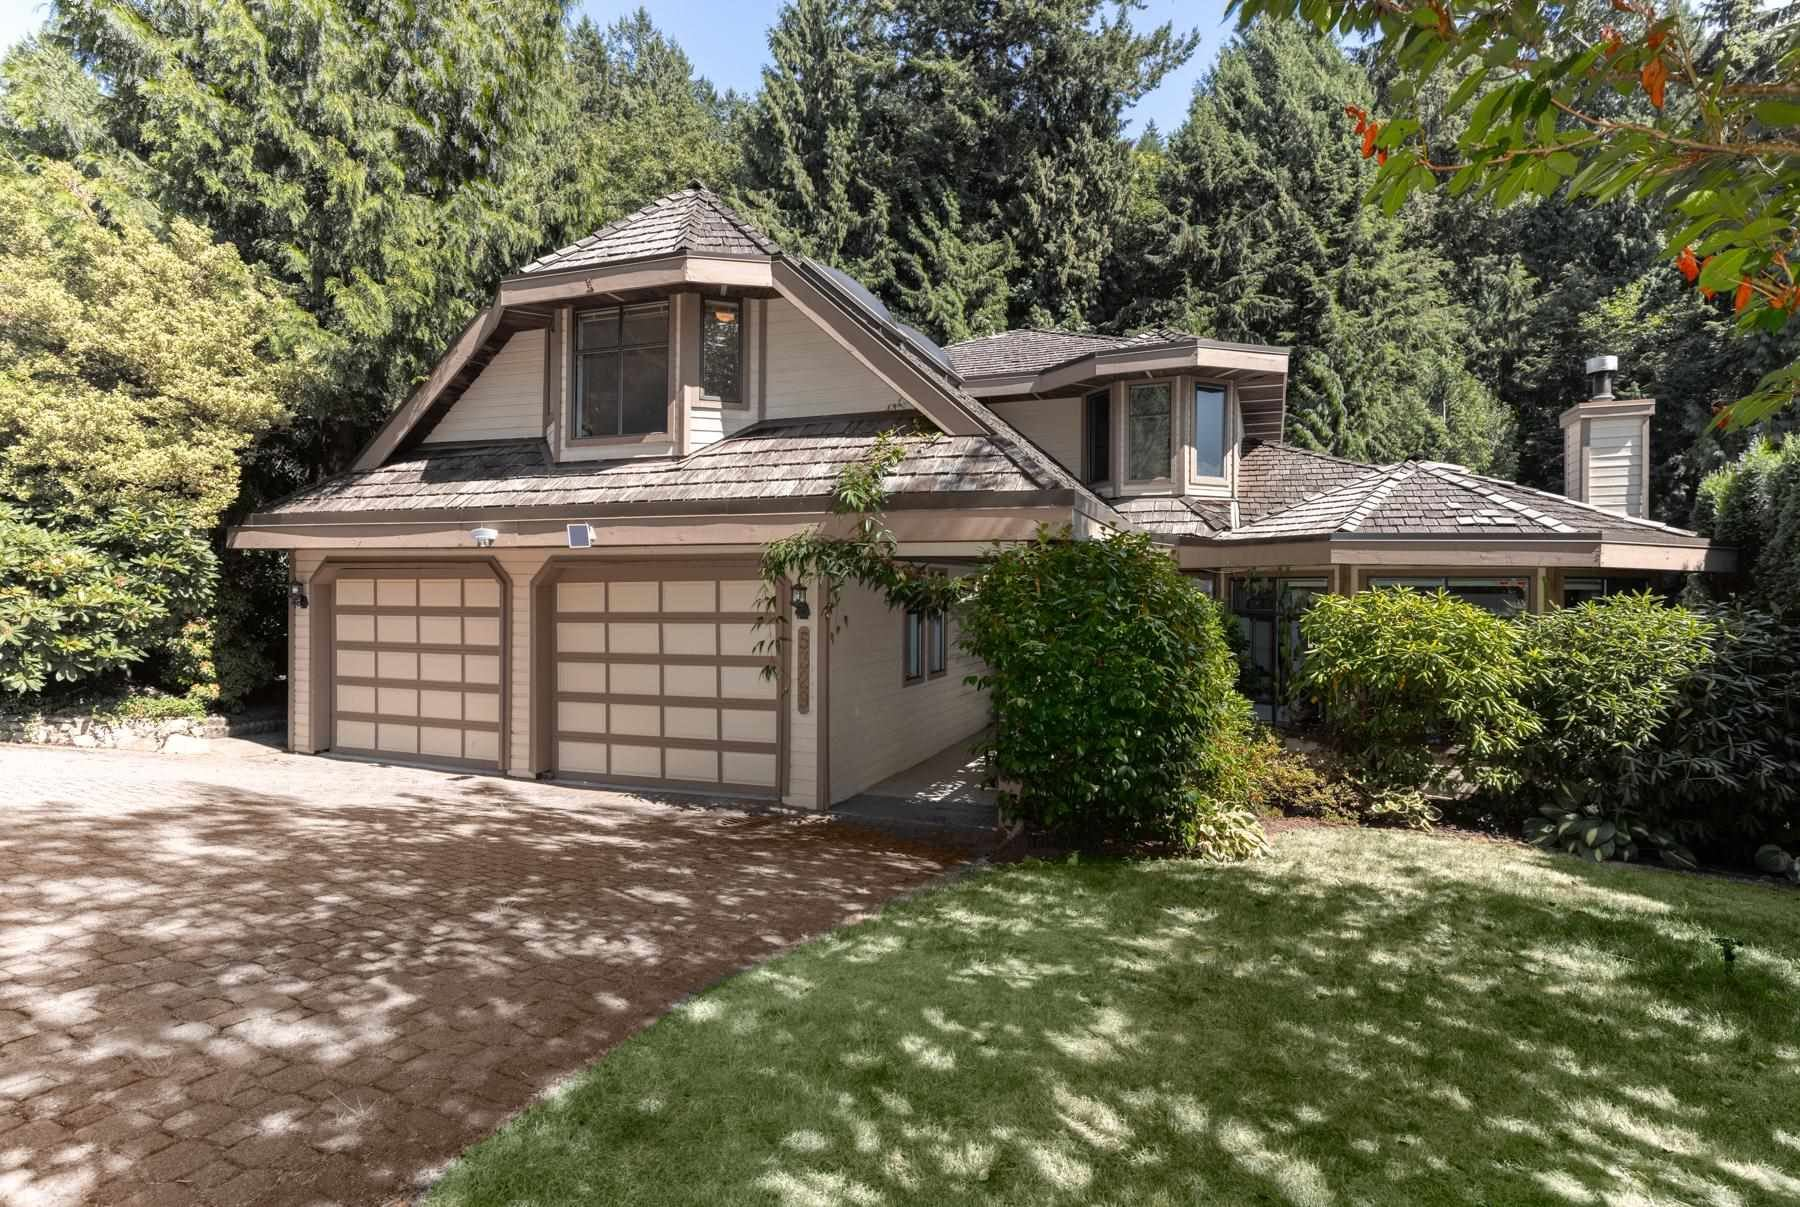 Photo of 5329 WESTHAVEN WYND, West Vancouver, BC V7W 3E8 (MLS # R2604714)